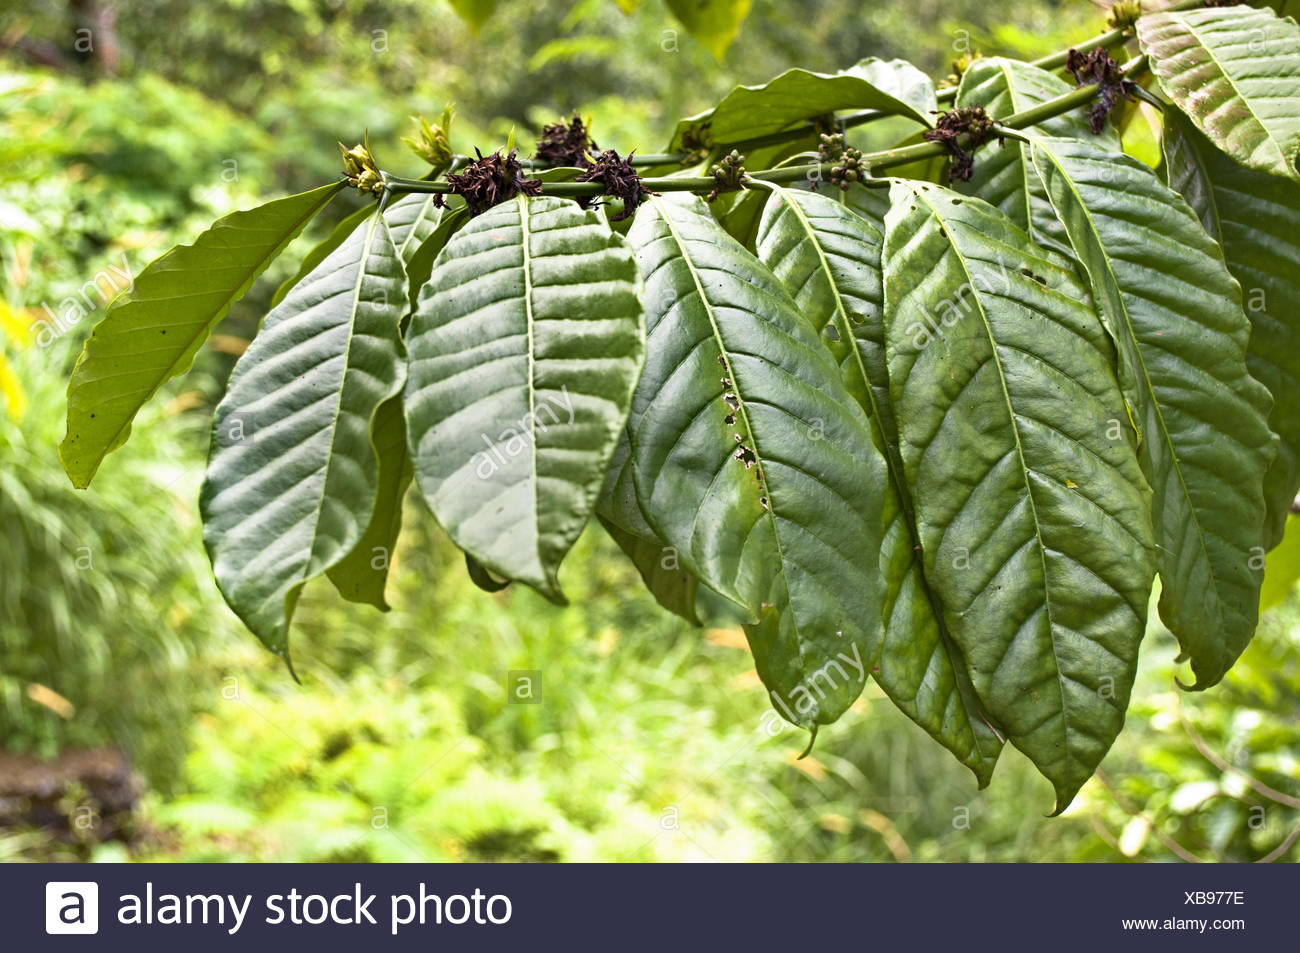 Fresh green tobacco leaves on forest background - Stock Image